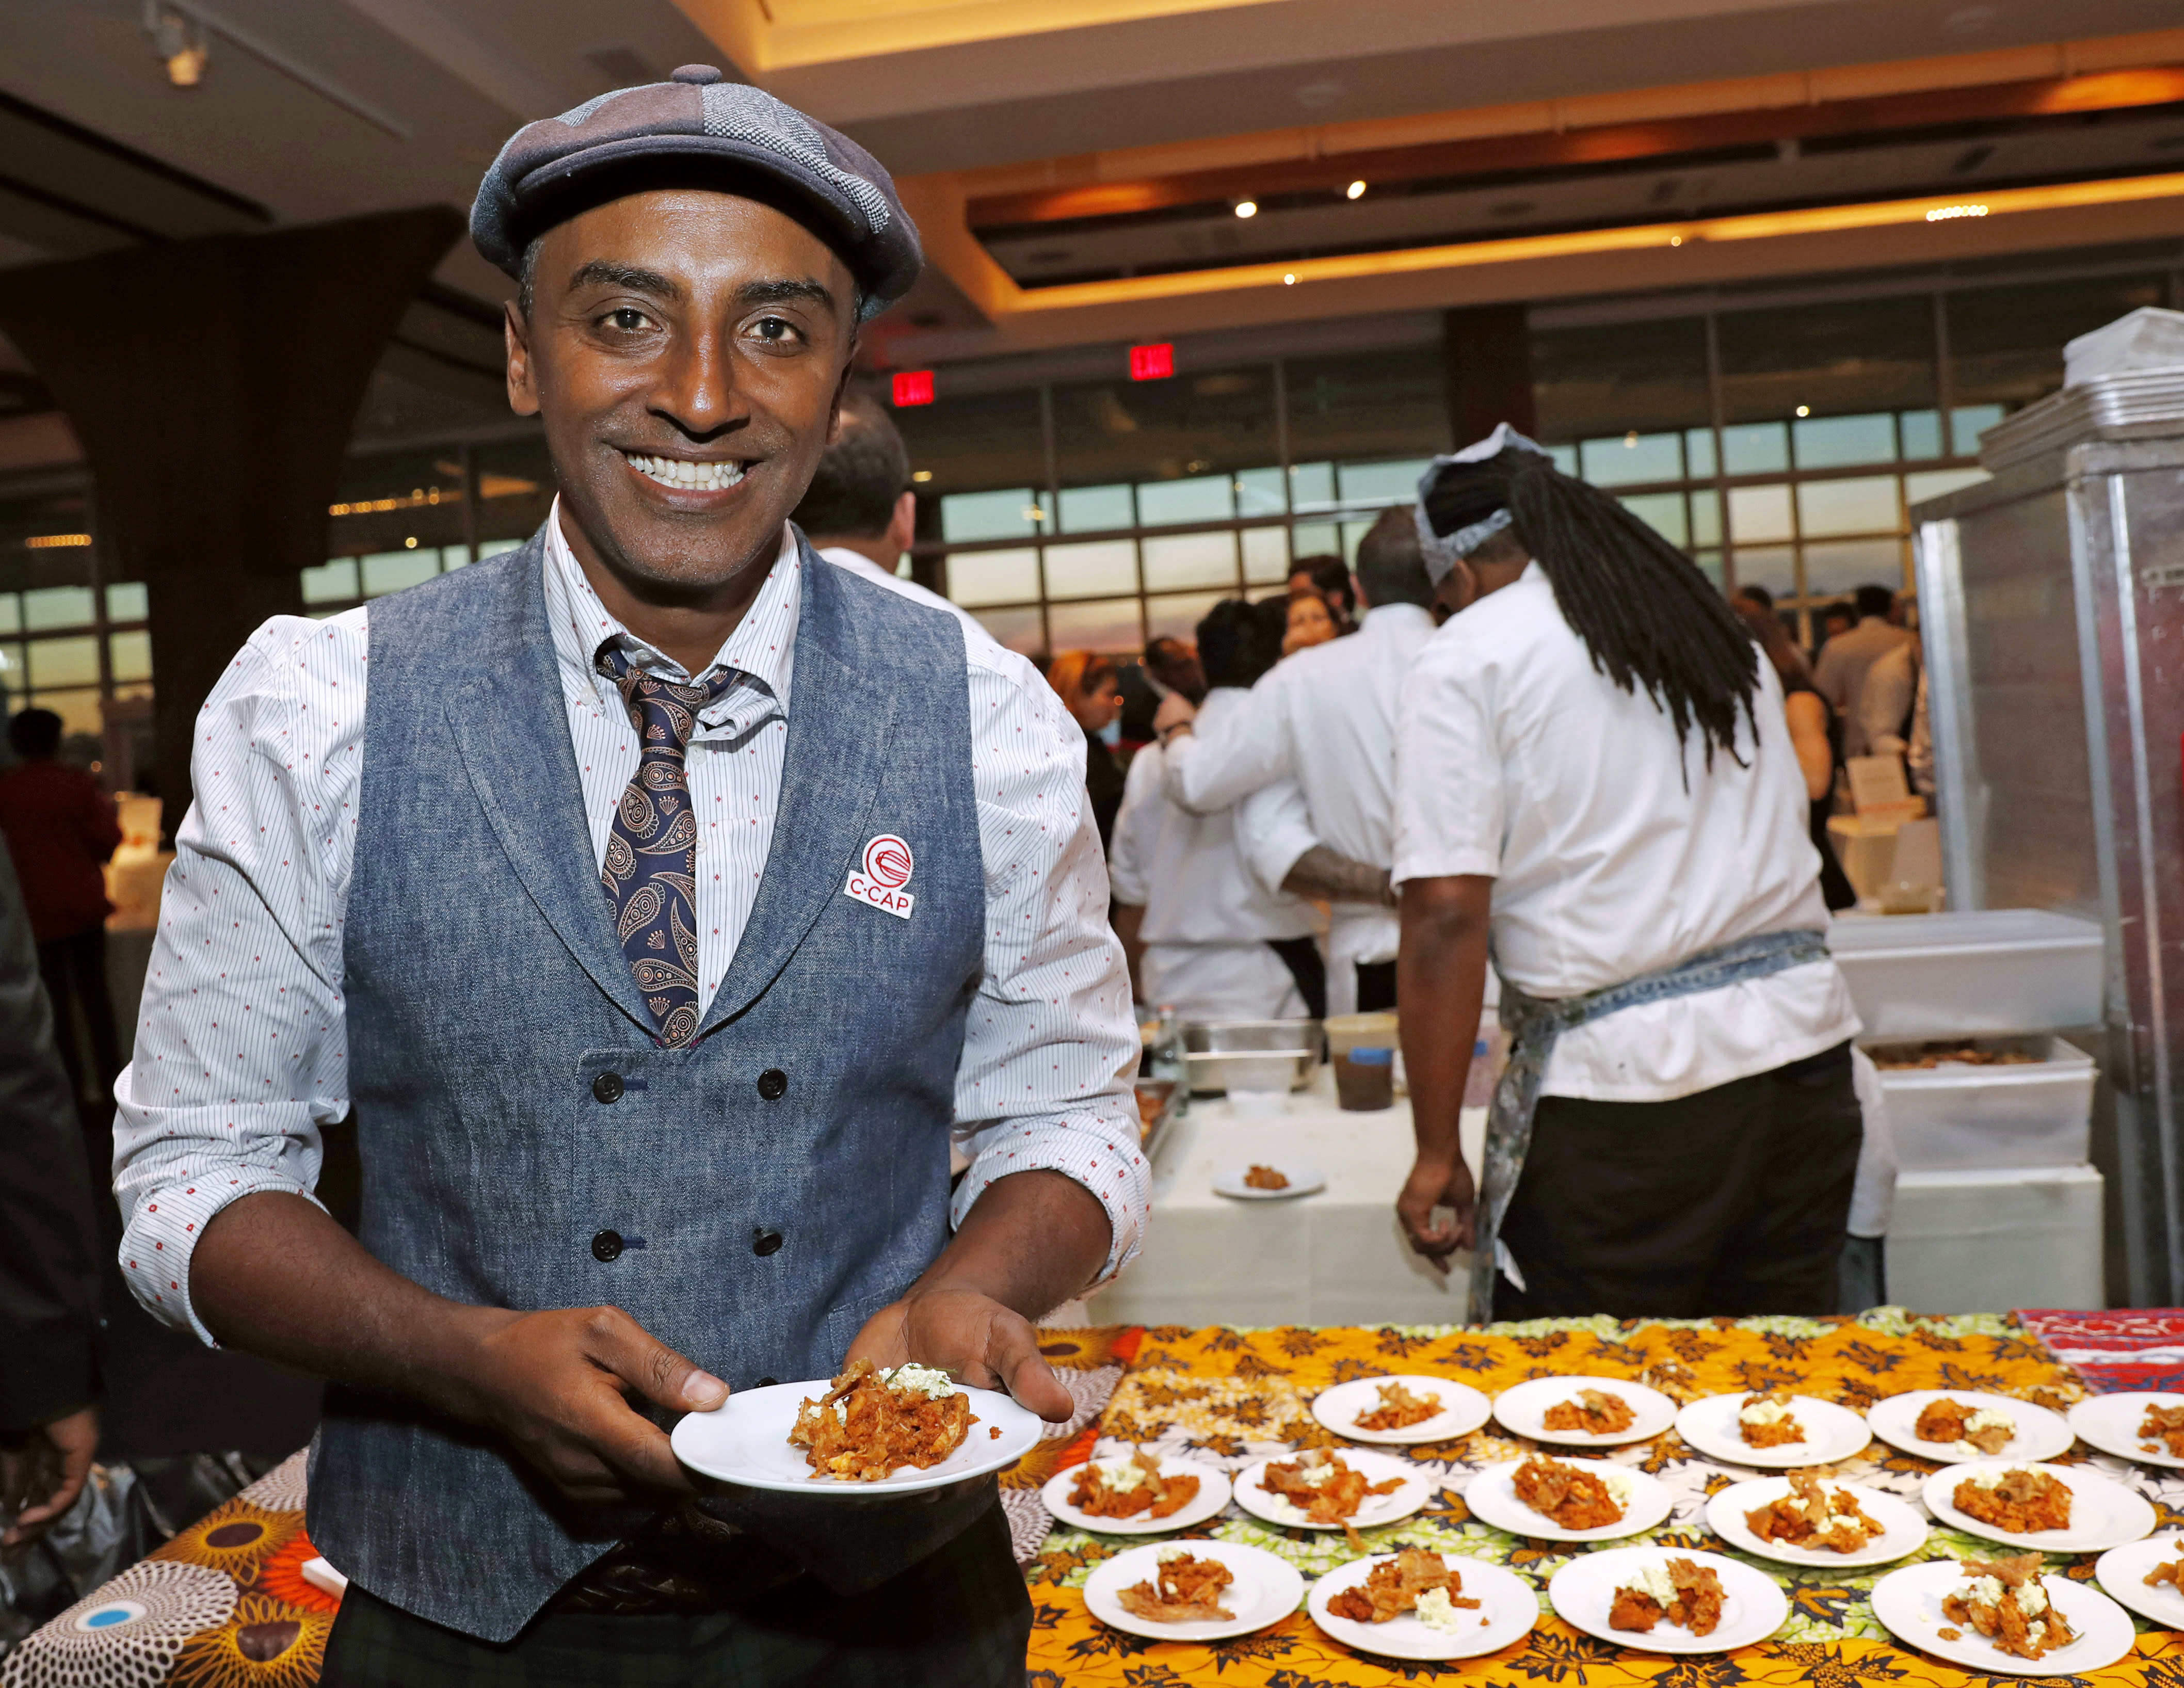 'Where restaurants go away, so goes all small businesses'